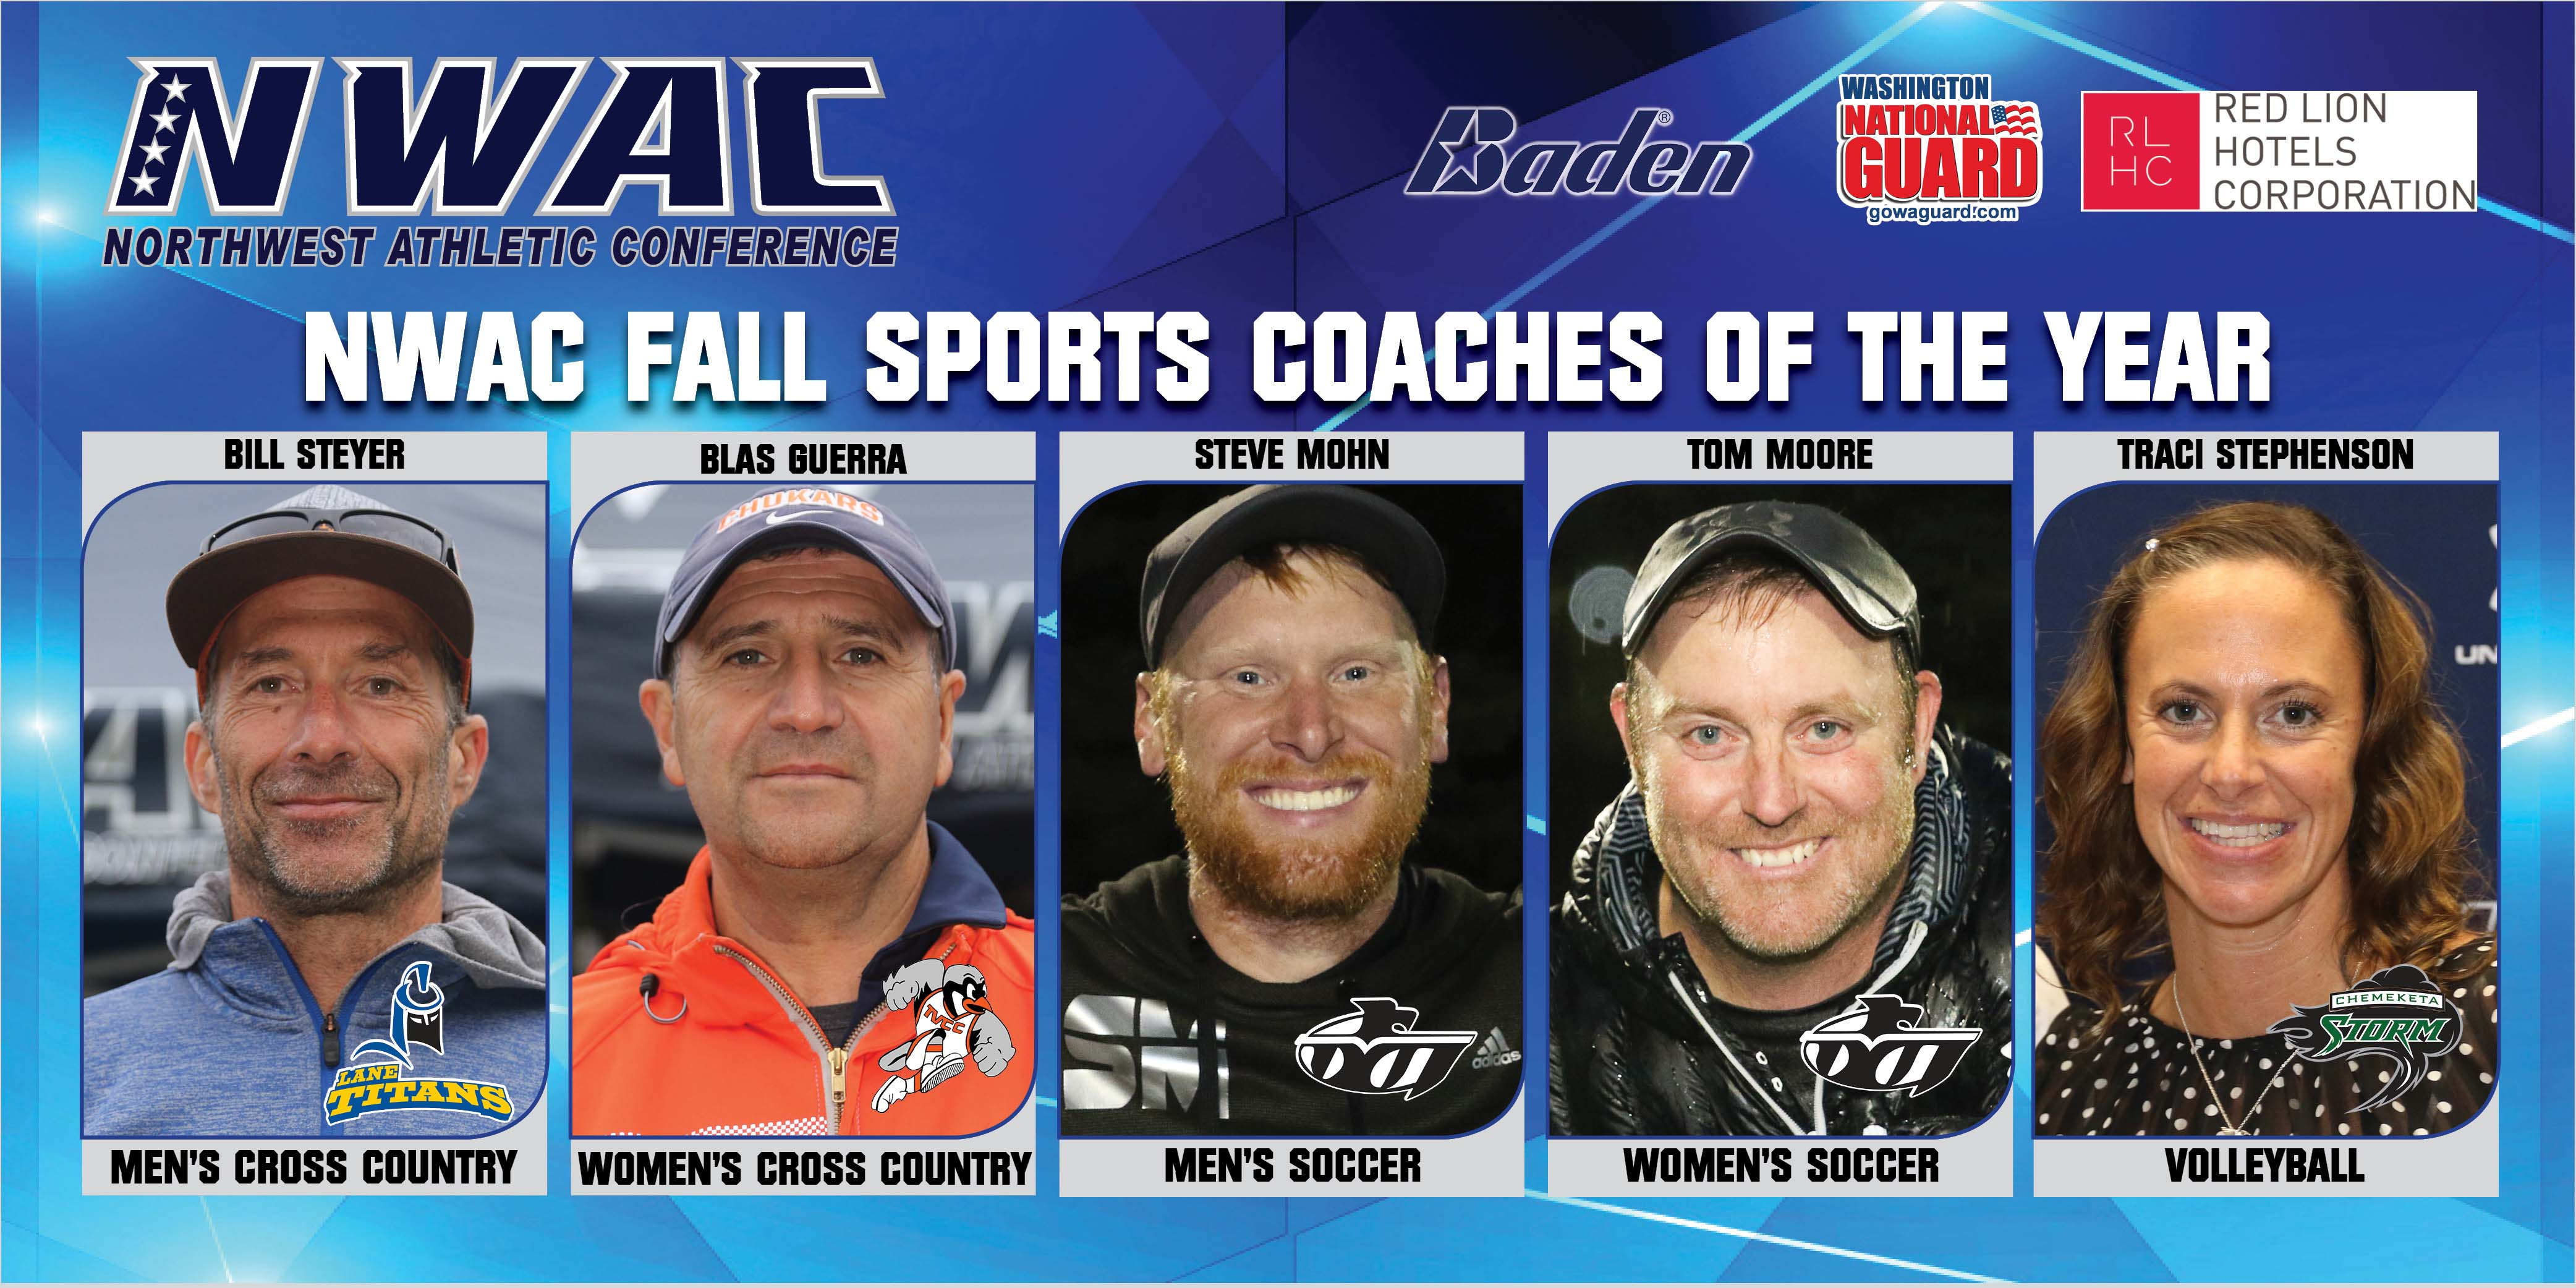 NWAC Coach of the Year Graphic and Coaches Photos